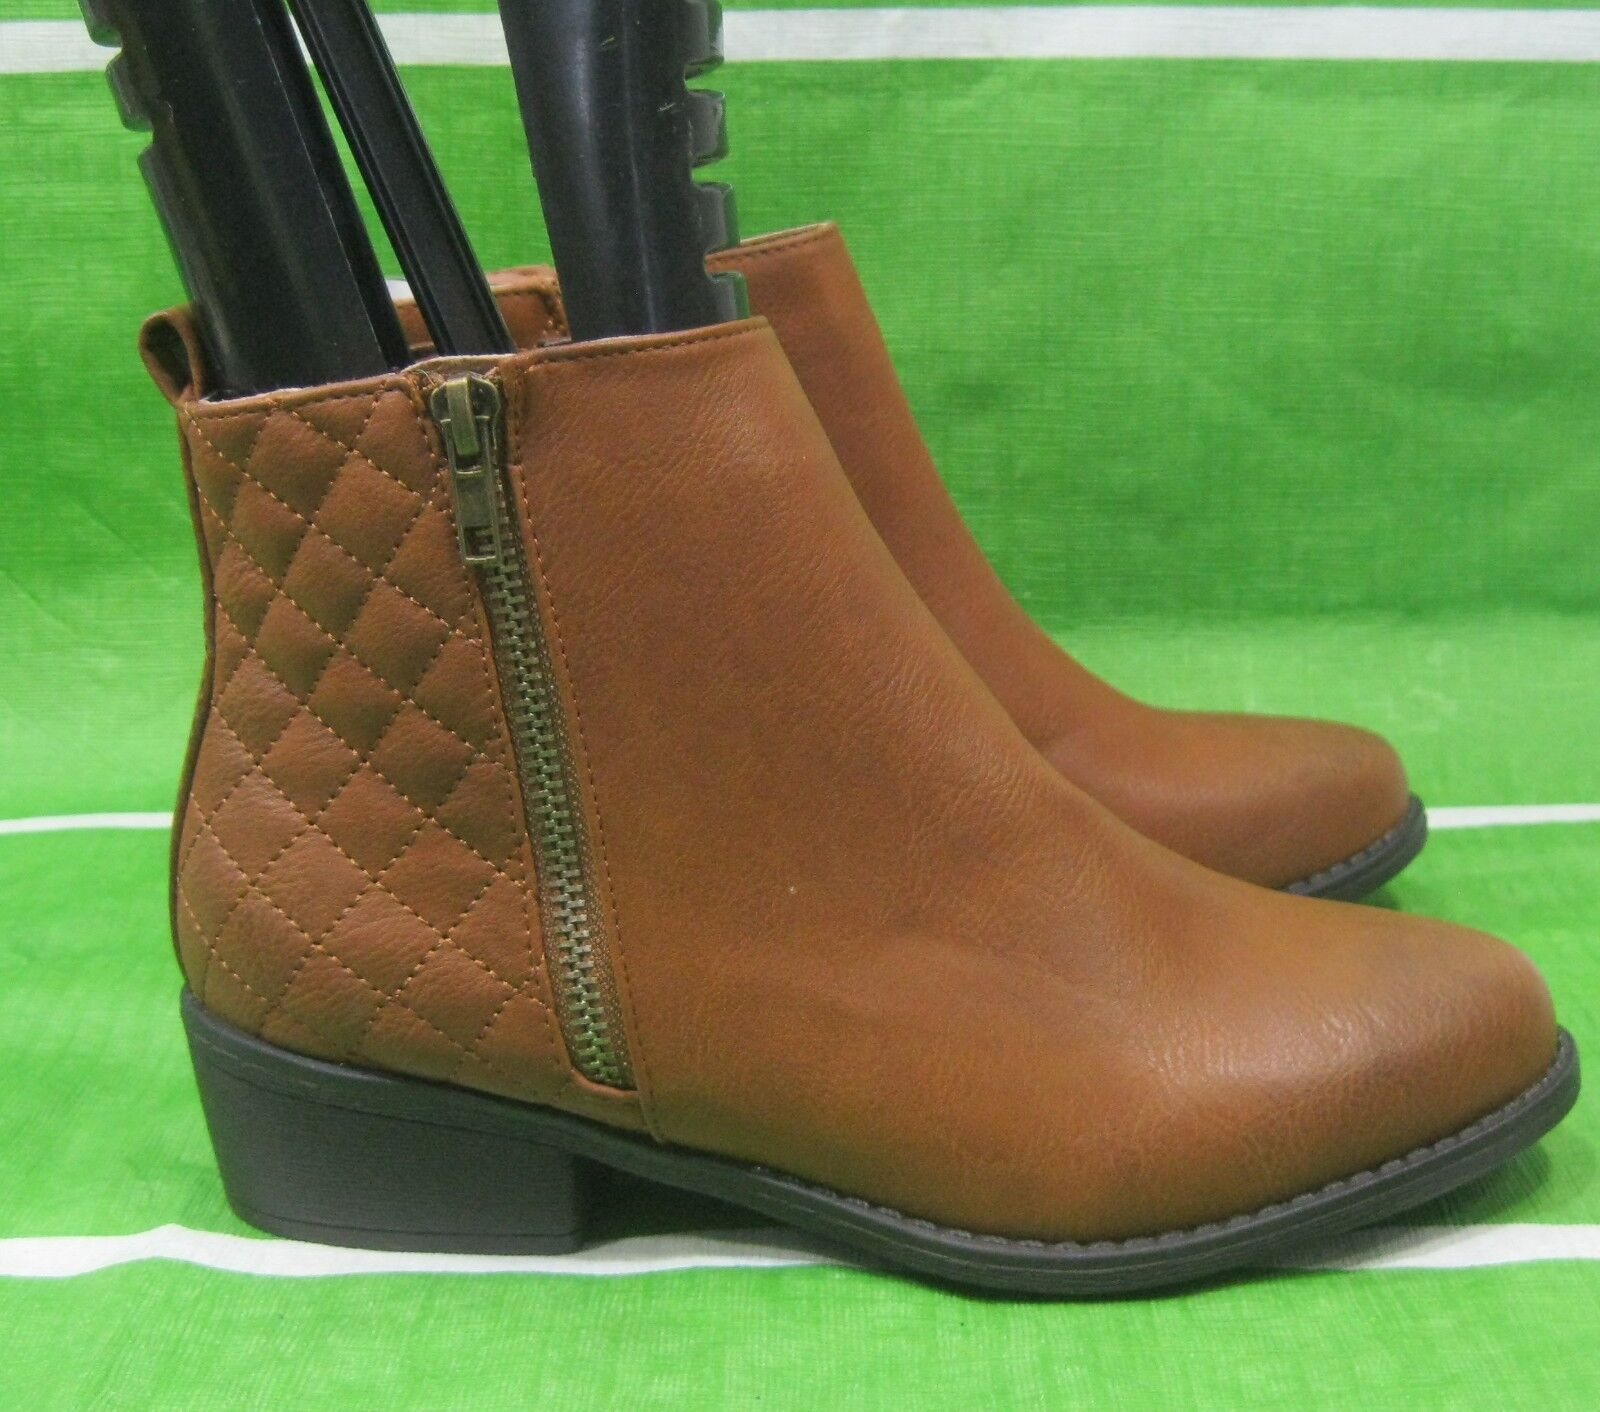 "new ladies Tan 2""block Heel Round Toe  Sexy Ankle Boot Size 6.5"